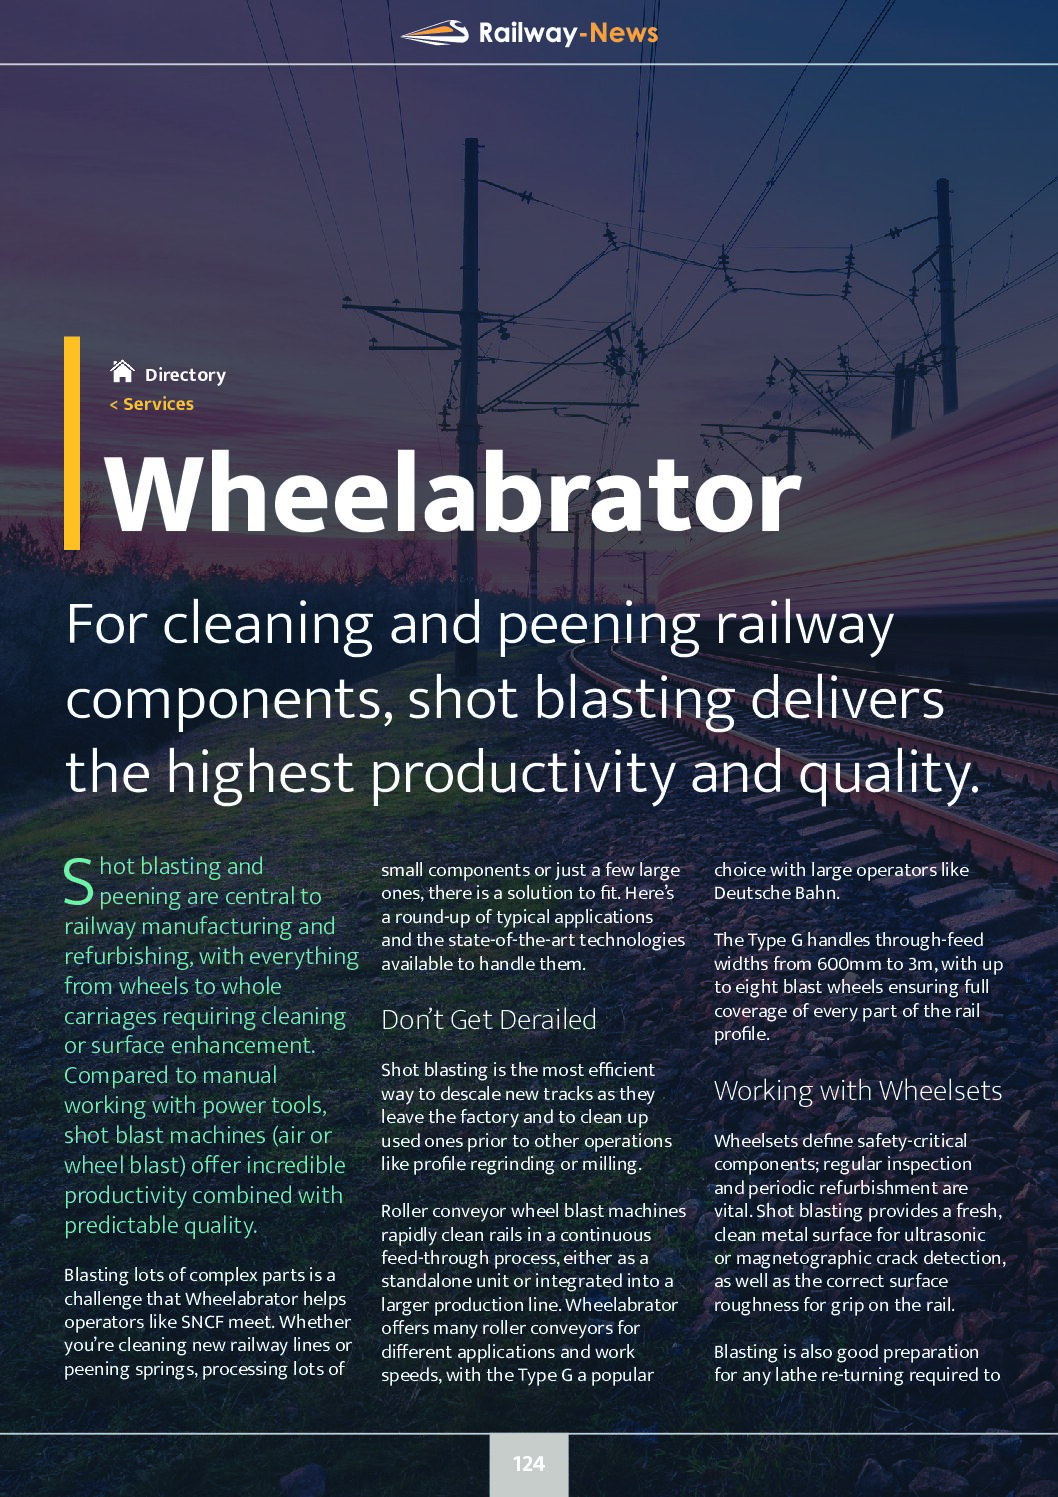 For Cleaning and Peening Railway Components, Choose Shot Blasting